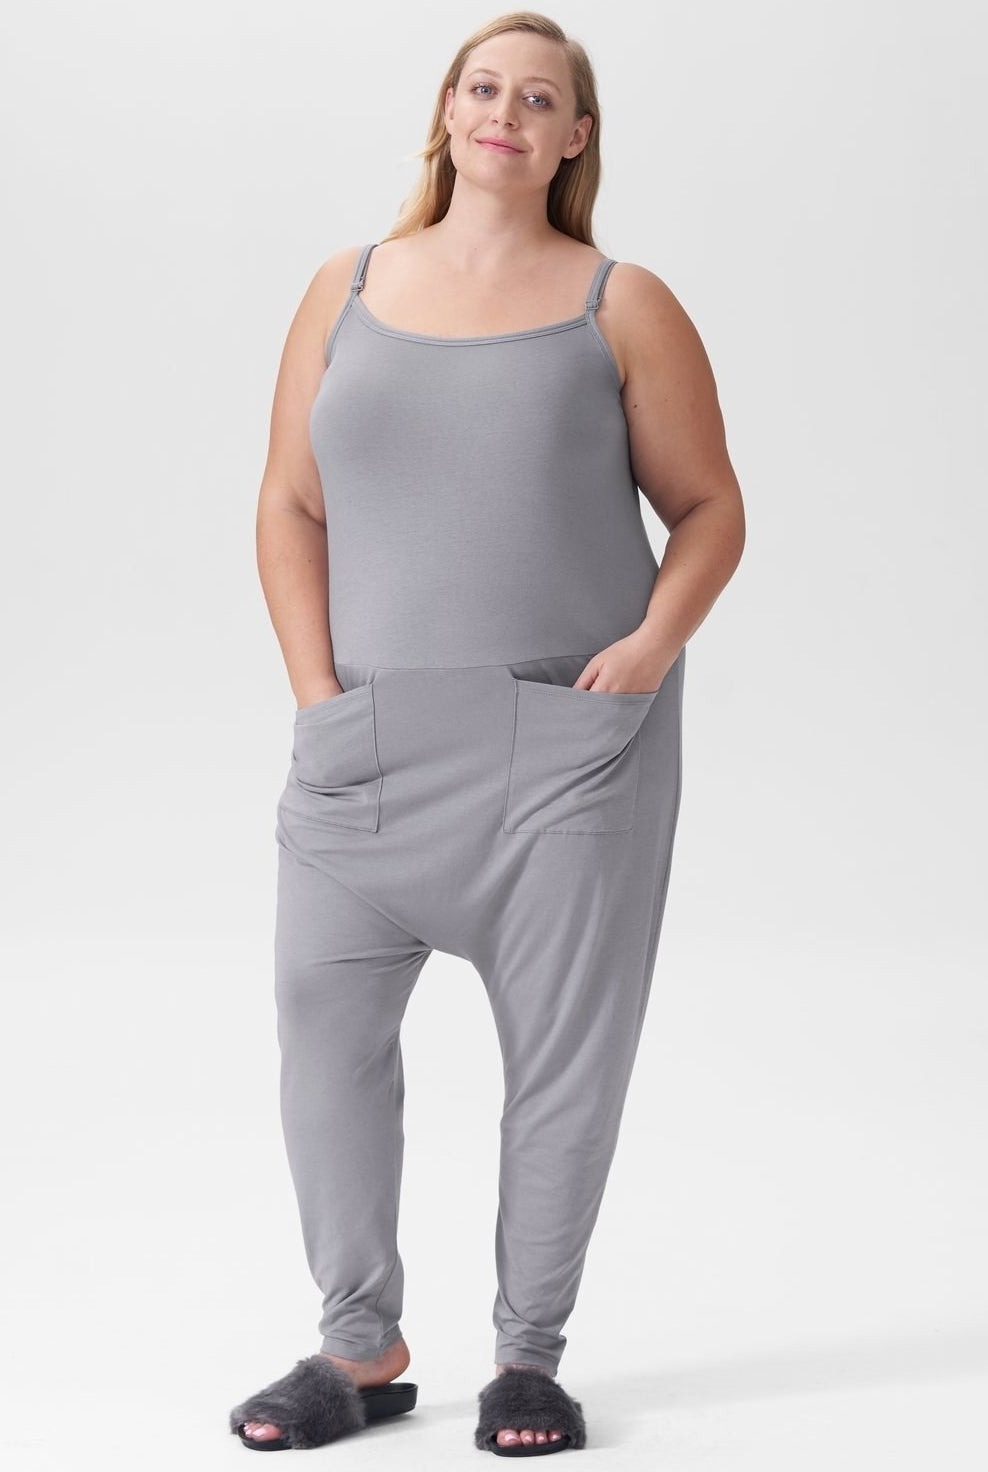 model in grey jumpsuit with hands in two large front pockets